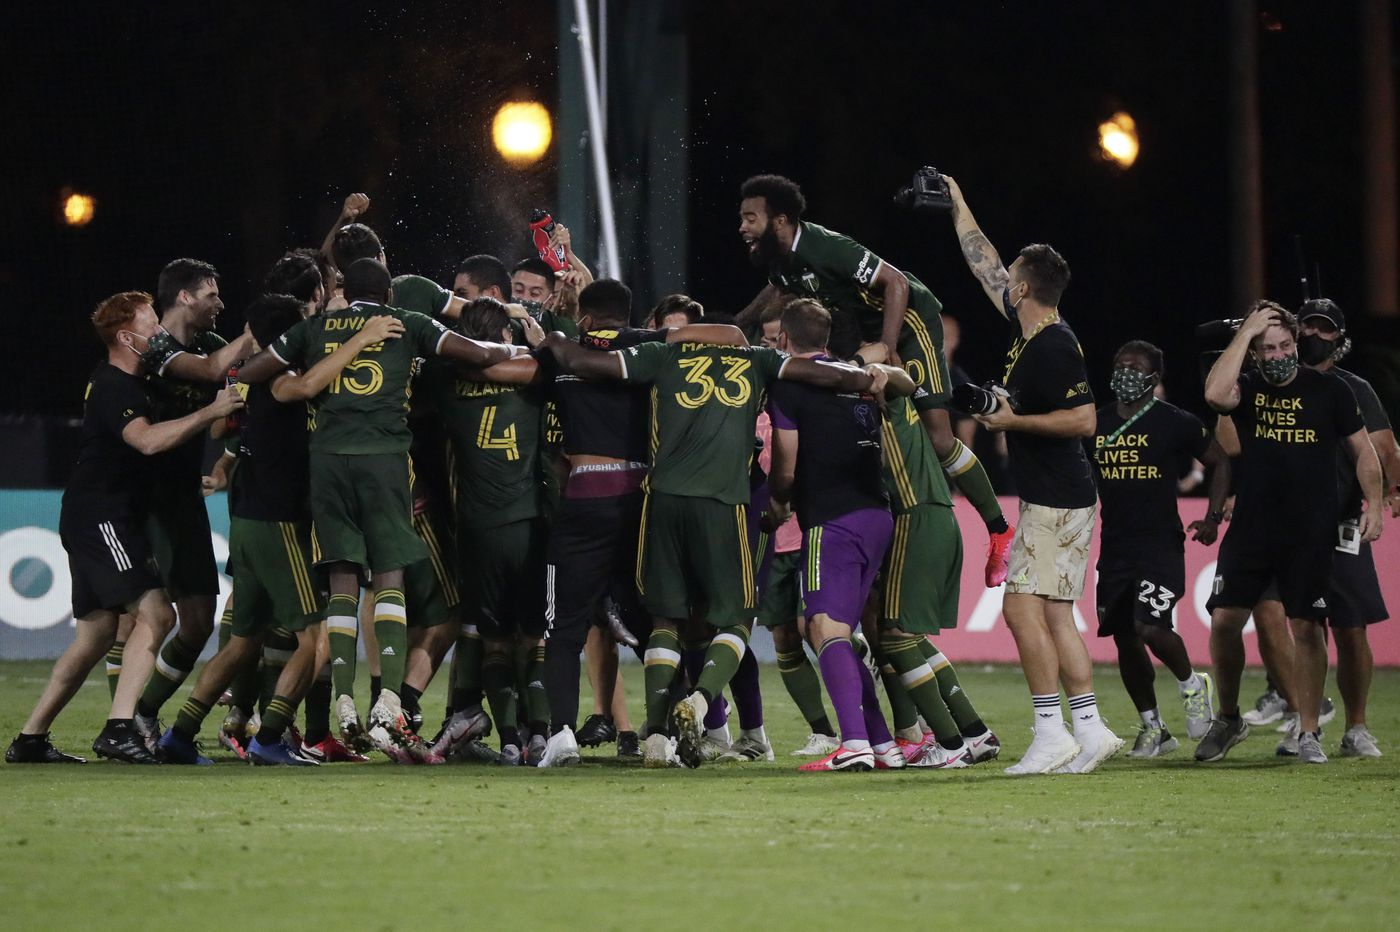 Portland beats Orlando 2-1 in MLS tournament final